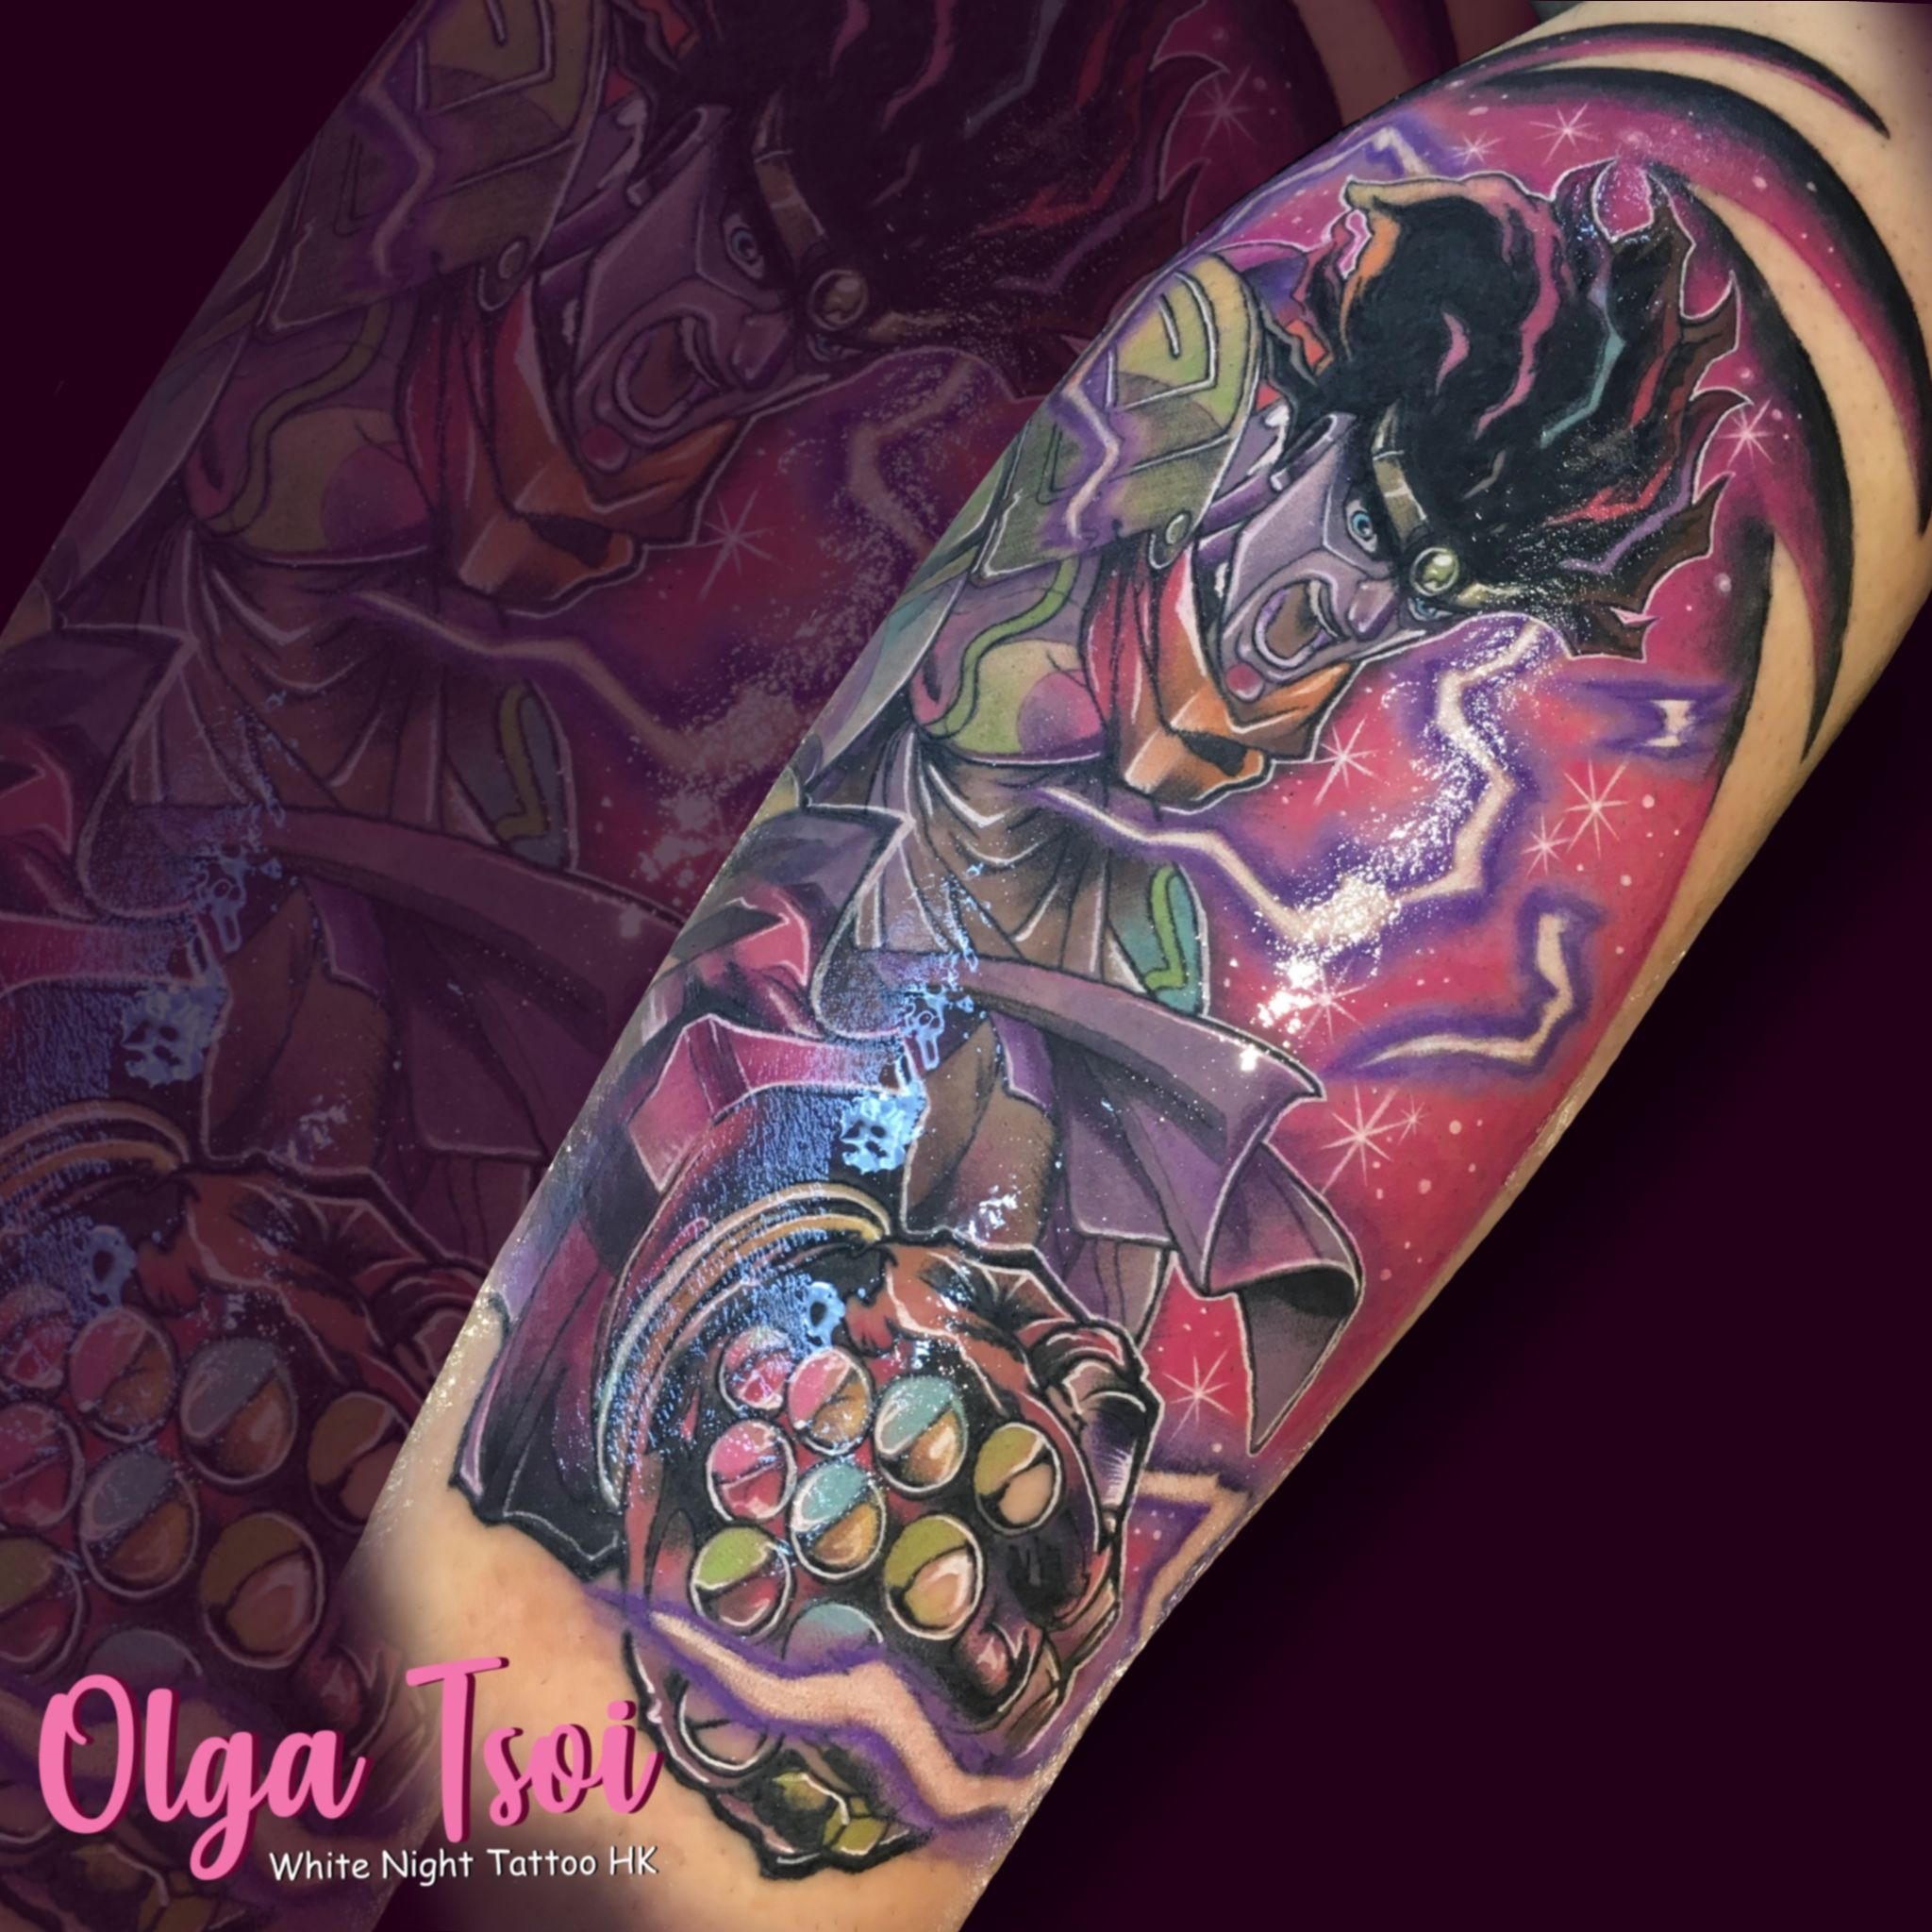 Stand Arrow Tattoo Jojo – After finishing jojo's bizarre adventure: